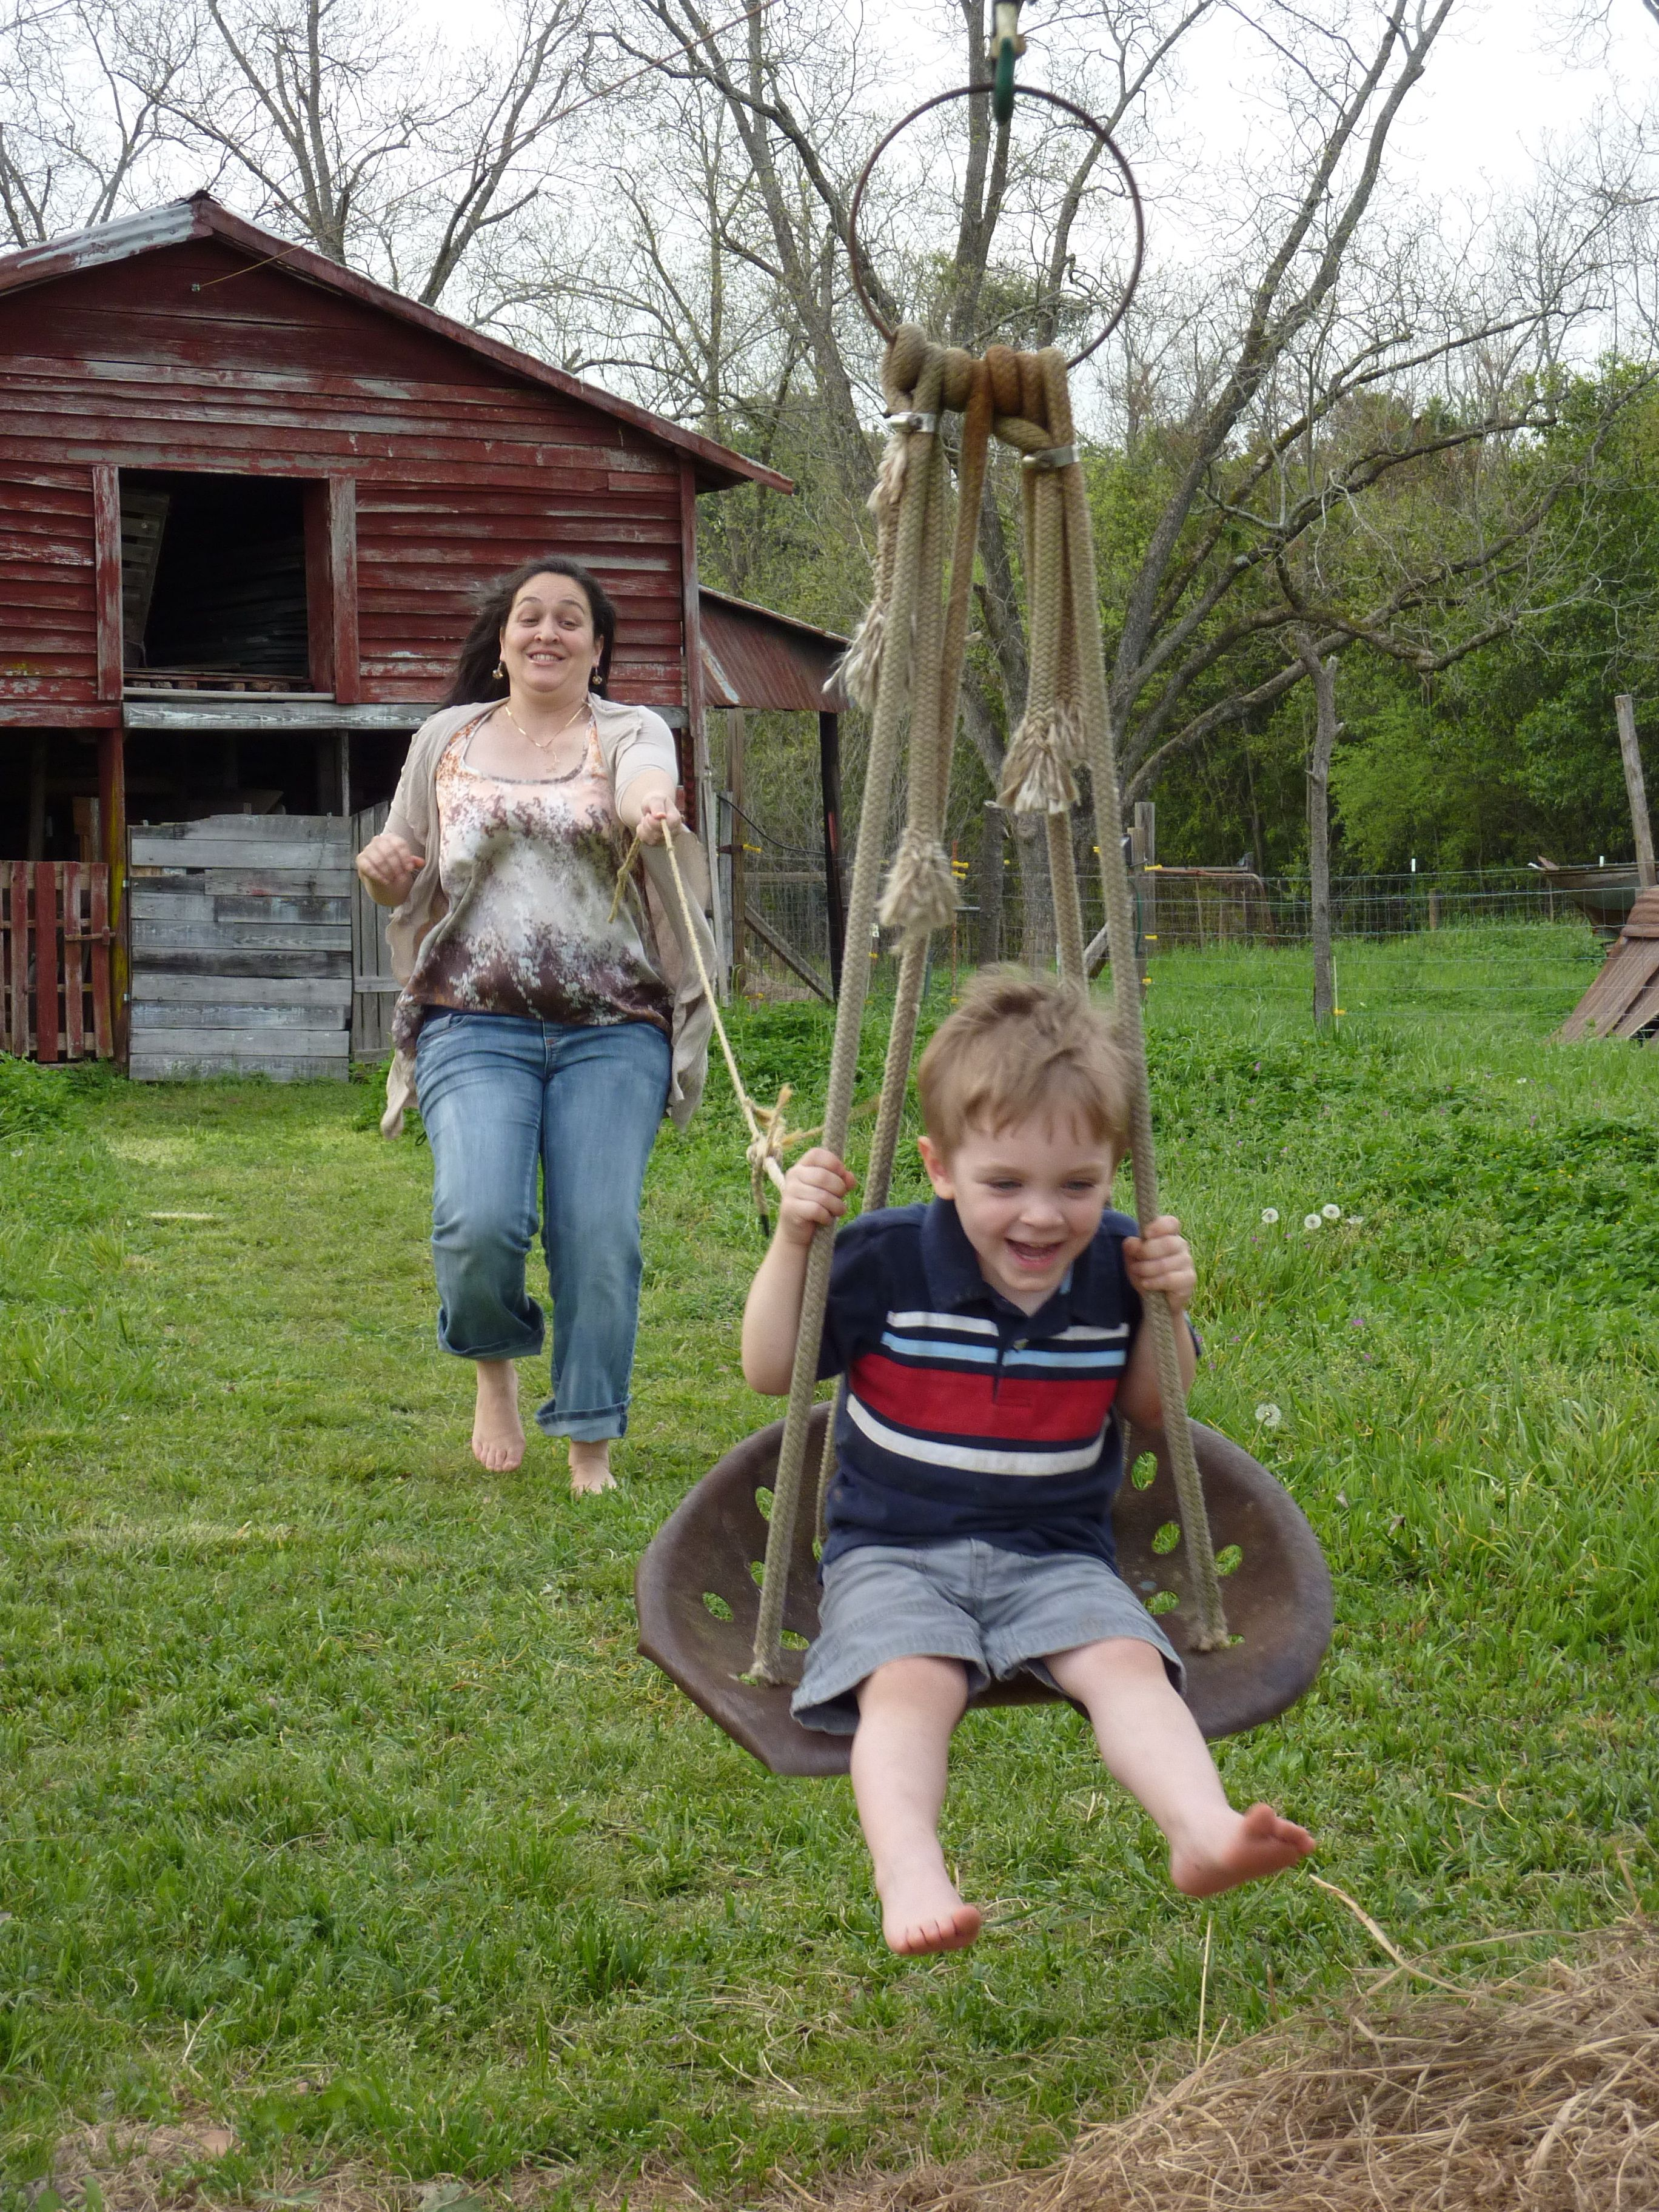 Zip Line Seat >> Repurposed Tractor Seat Becomes Swing Or Zip Line Chair For Country